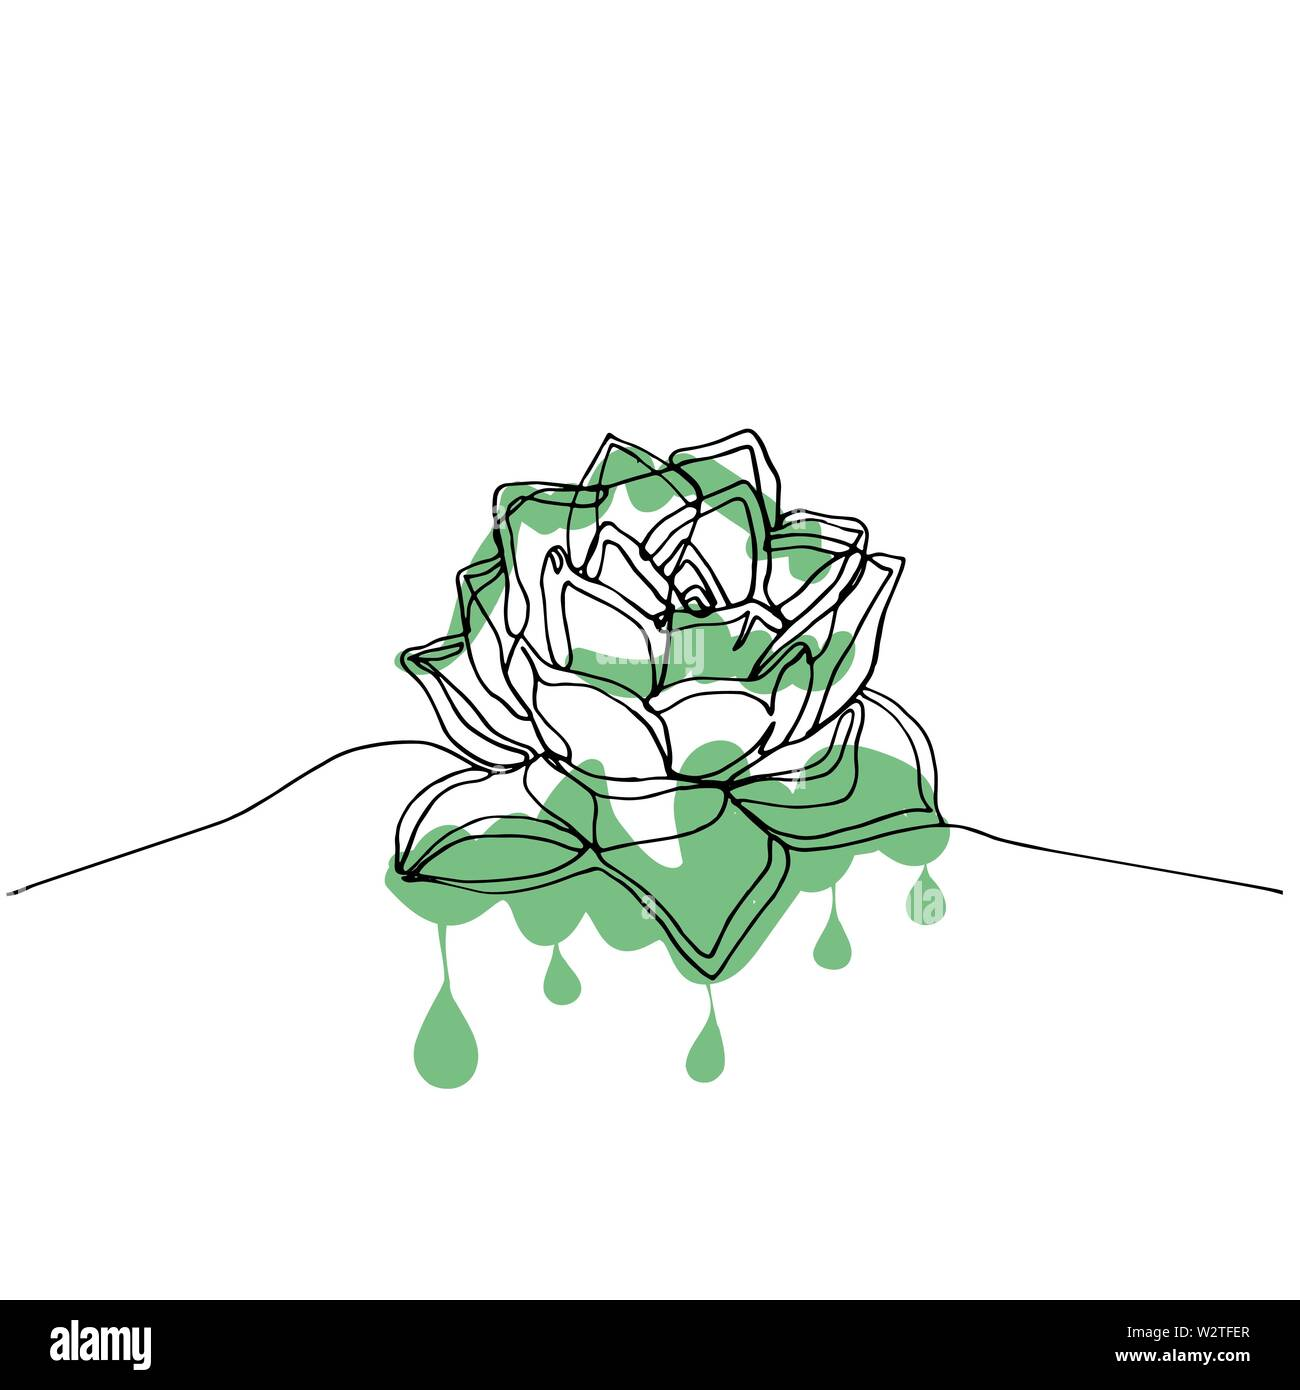 Succulent Line Drawing High Resolution Stock Photography And Images Alamy